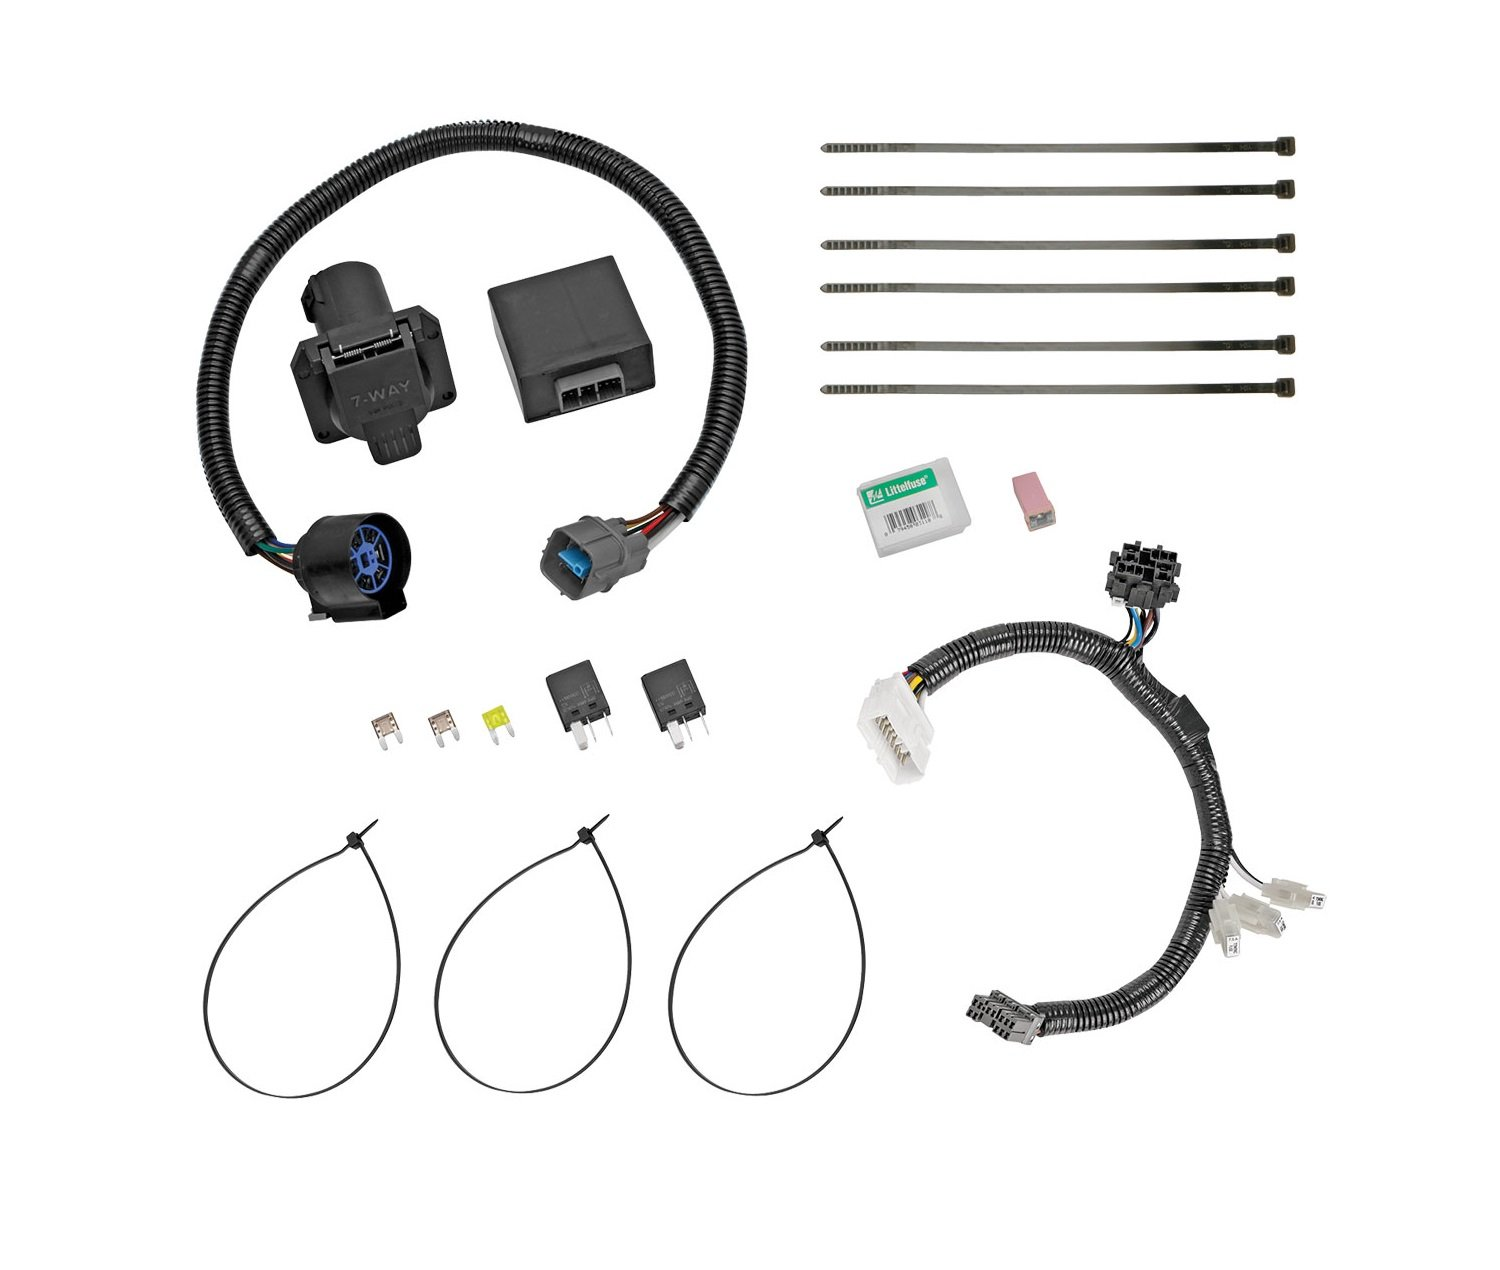 61CZMza0 zL._SL1500_ amazon com tow ready 118265 trailer wiring connector kit for 2013 honda pilot trailer wiring harness installation instructions at mifinder.co